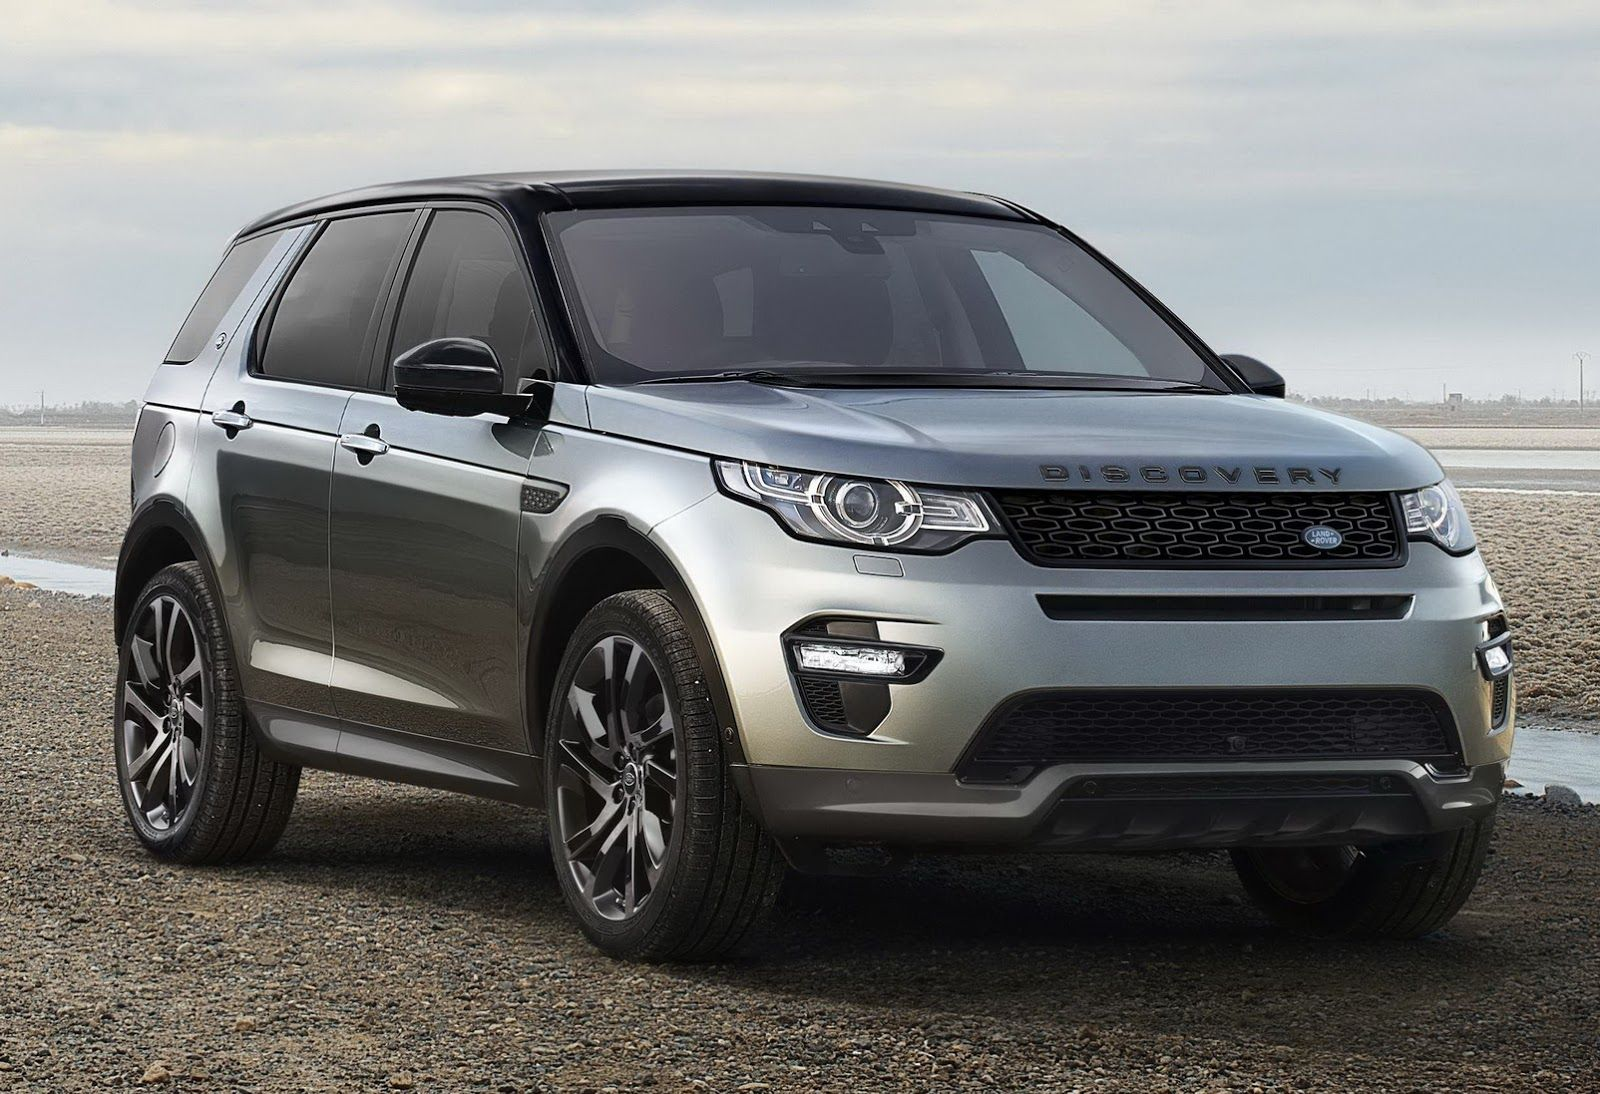 D5 black edition lrd5 pinterest land rovers discovery car and car leasing